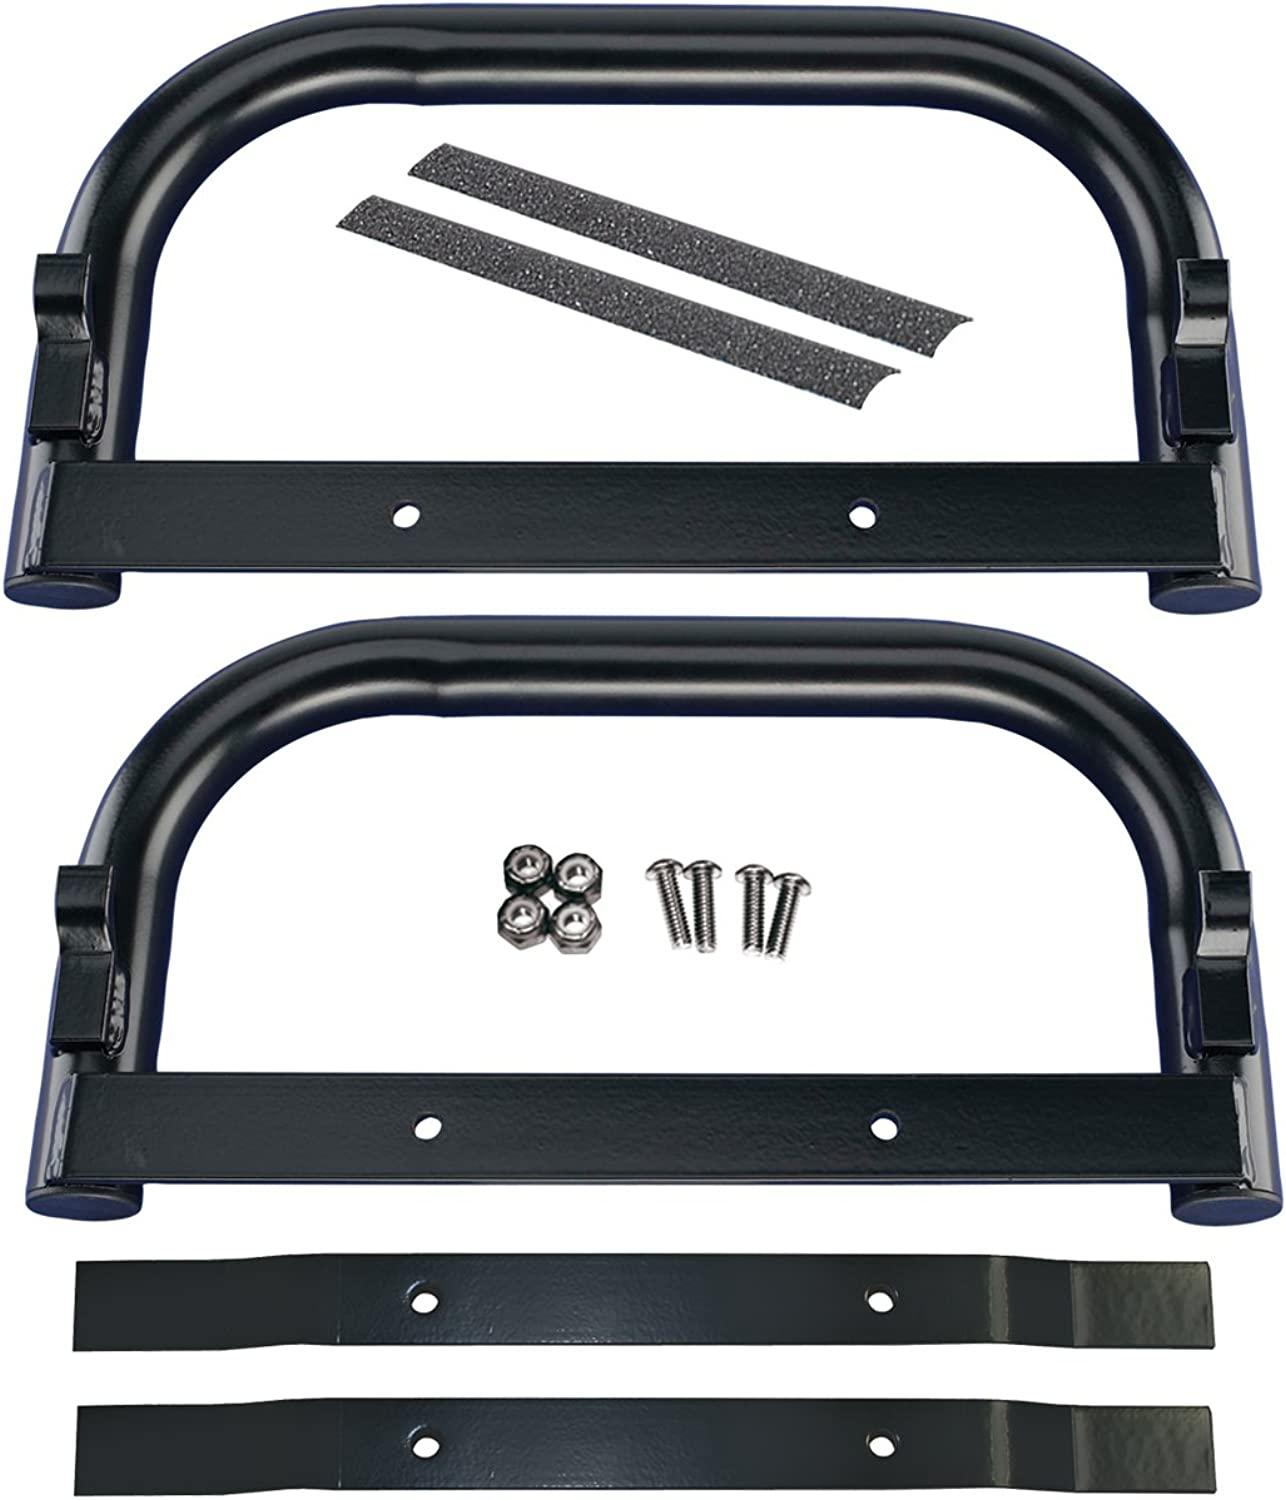 EZGO 609254 Nerf Bar Kit for Gas and Electric Vehicles, Black